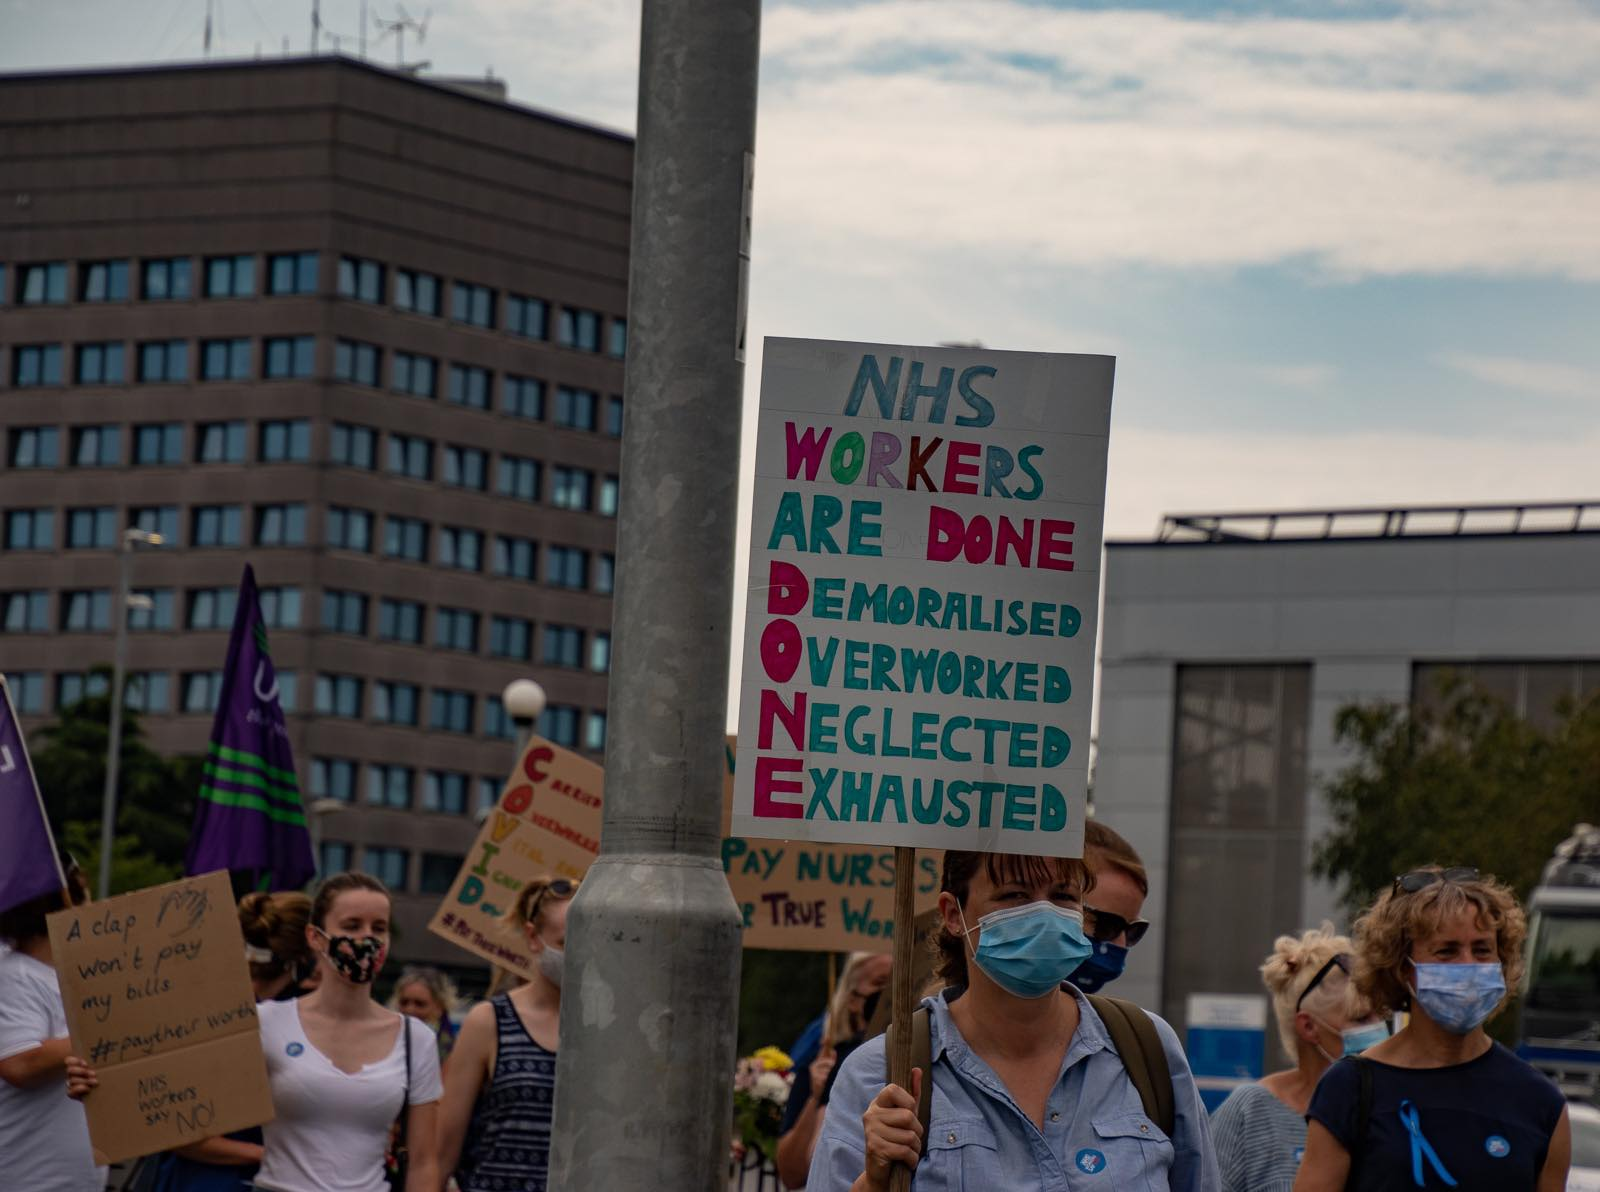 'Rise Like Lions' – Essex NHS Workers March to Protest Pay